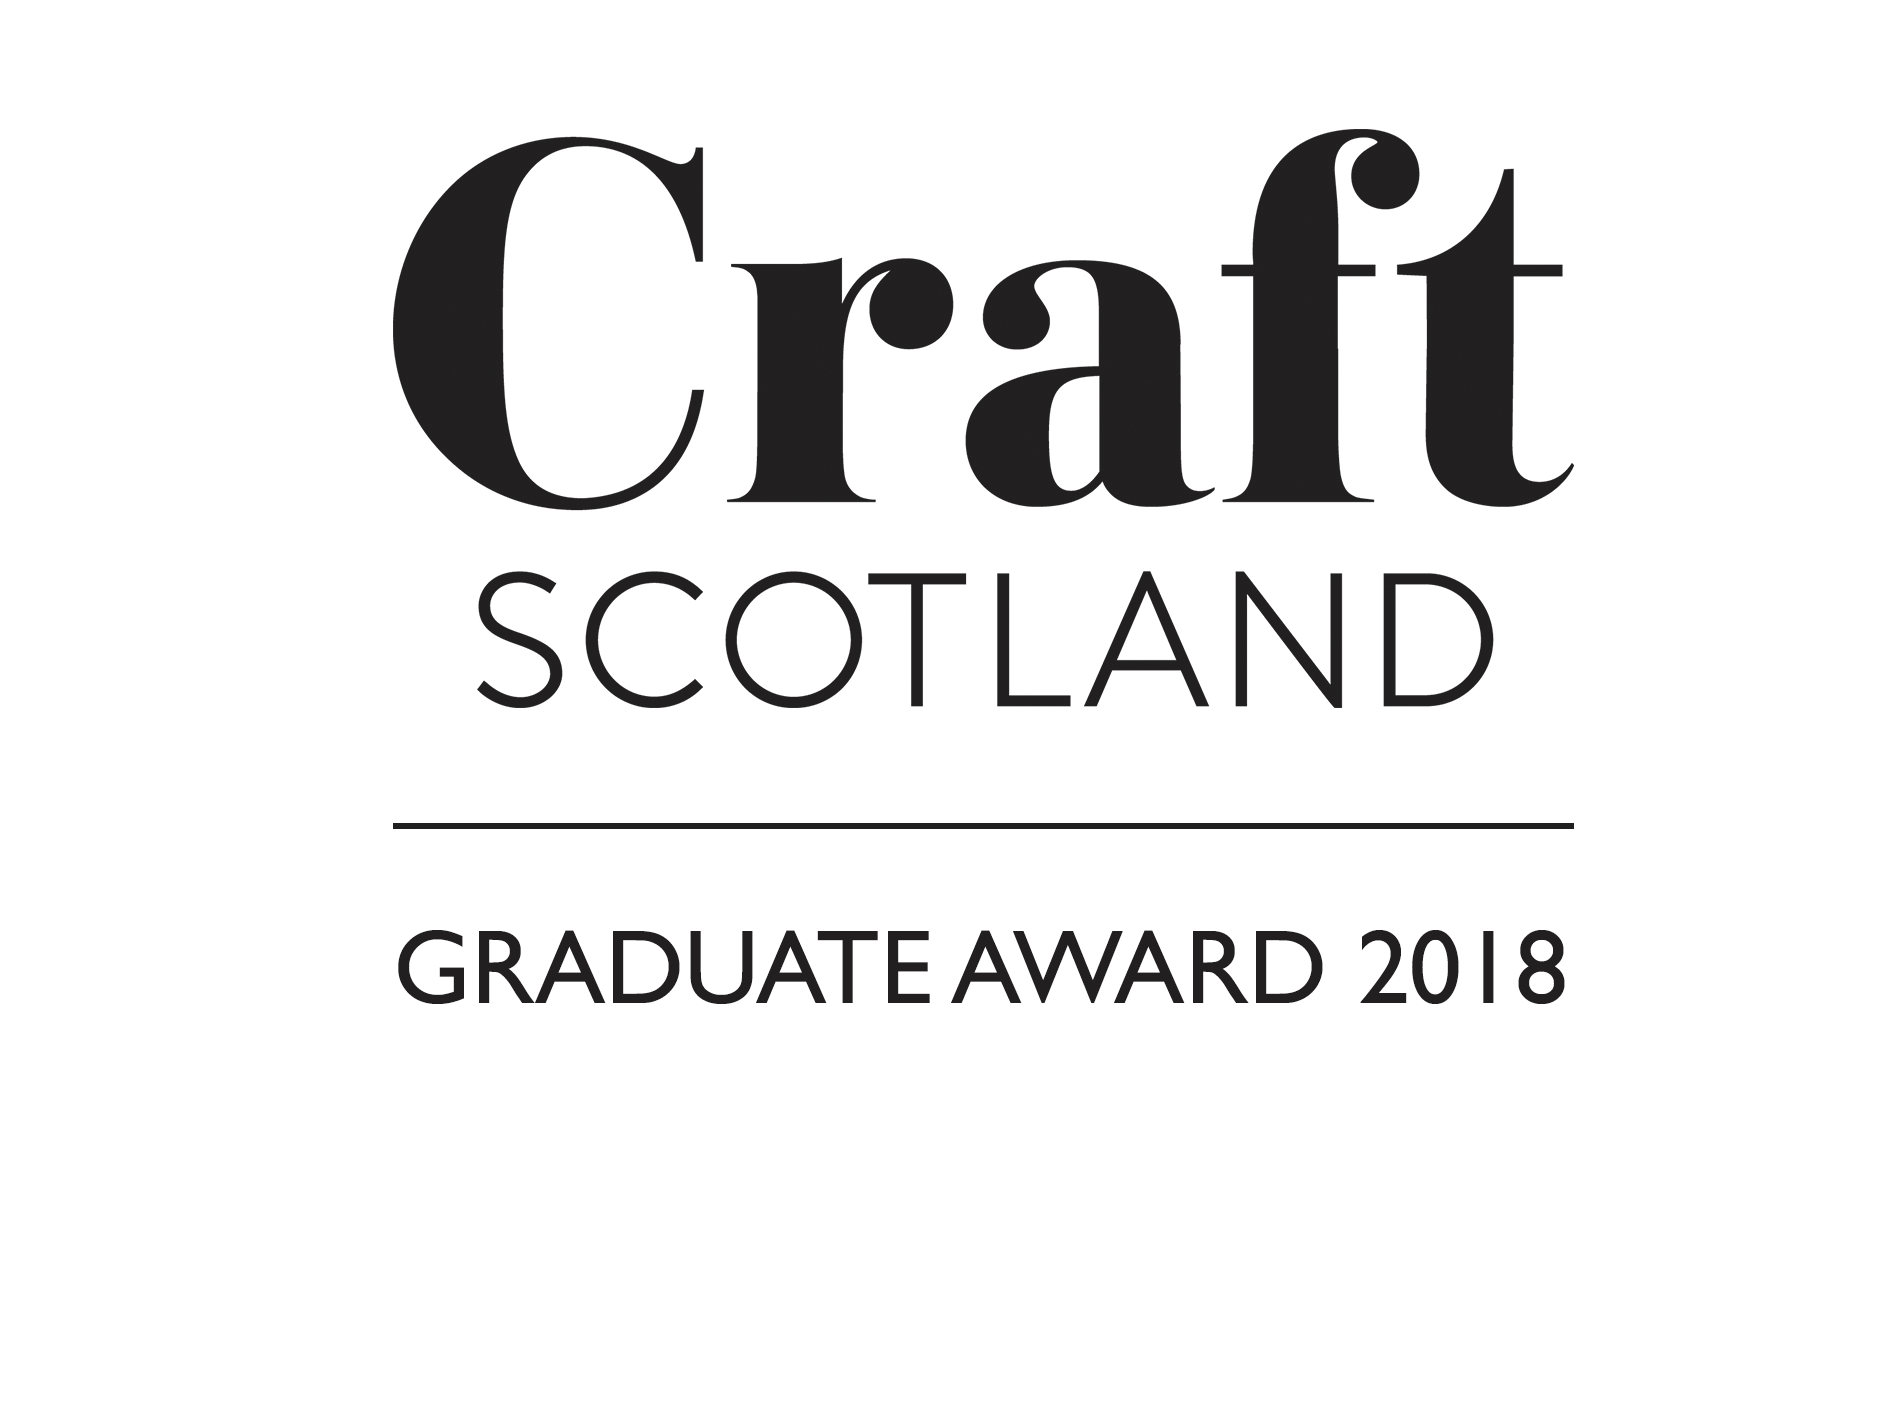 Craft Scotland Graduate Award 2018